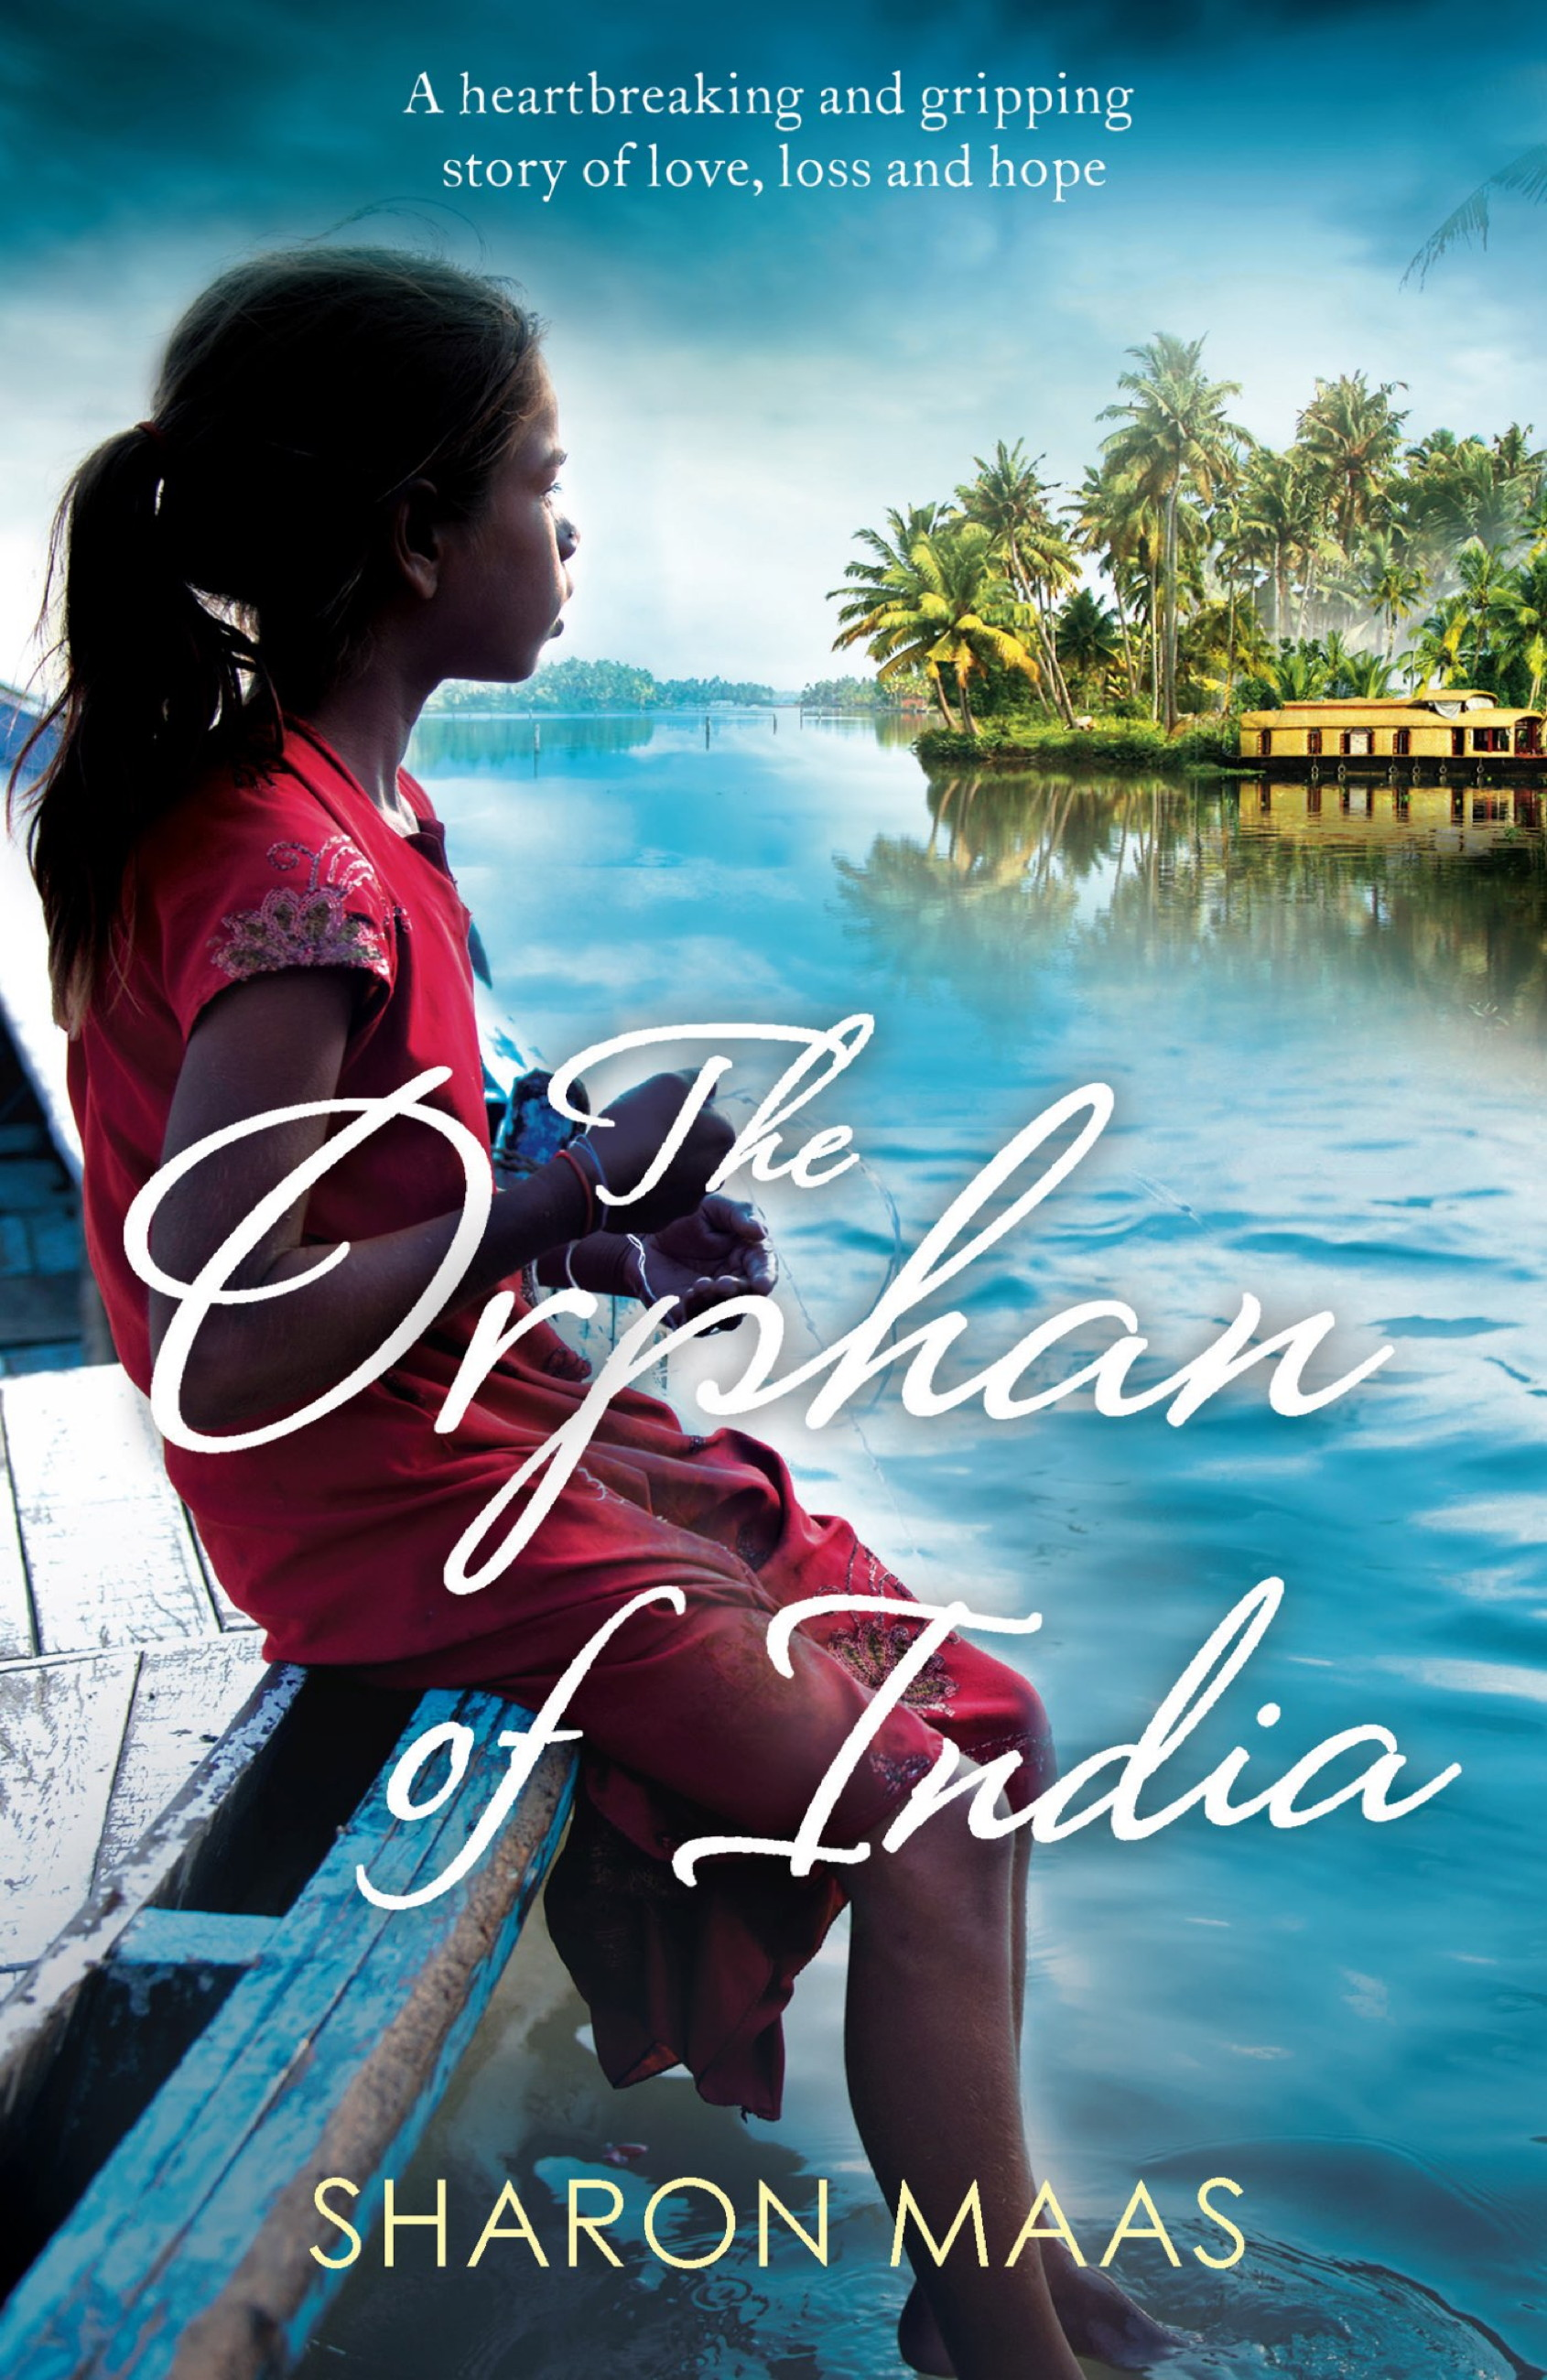 The Orphan of India